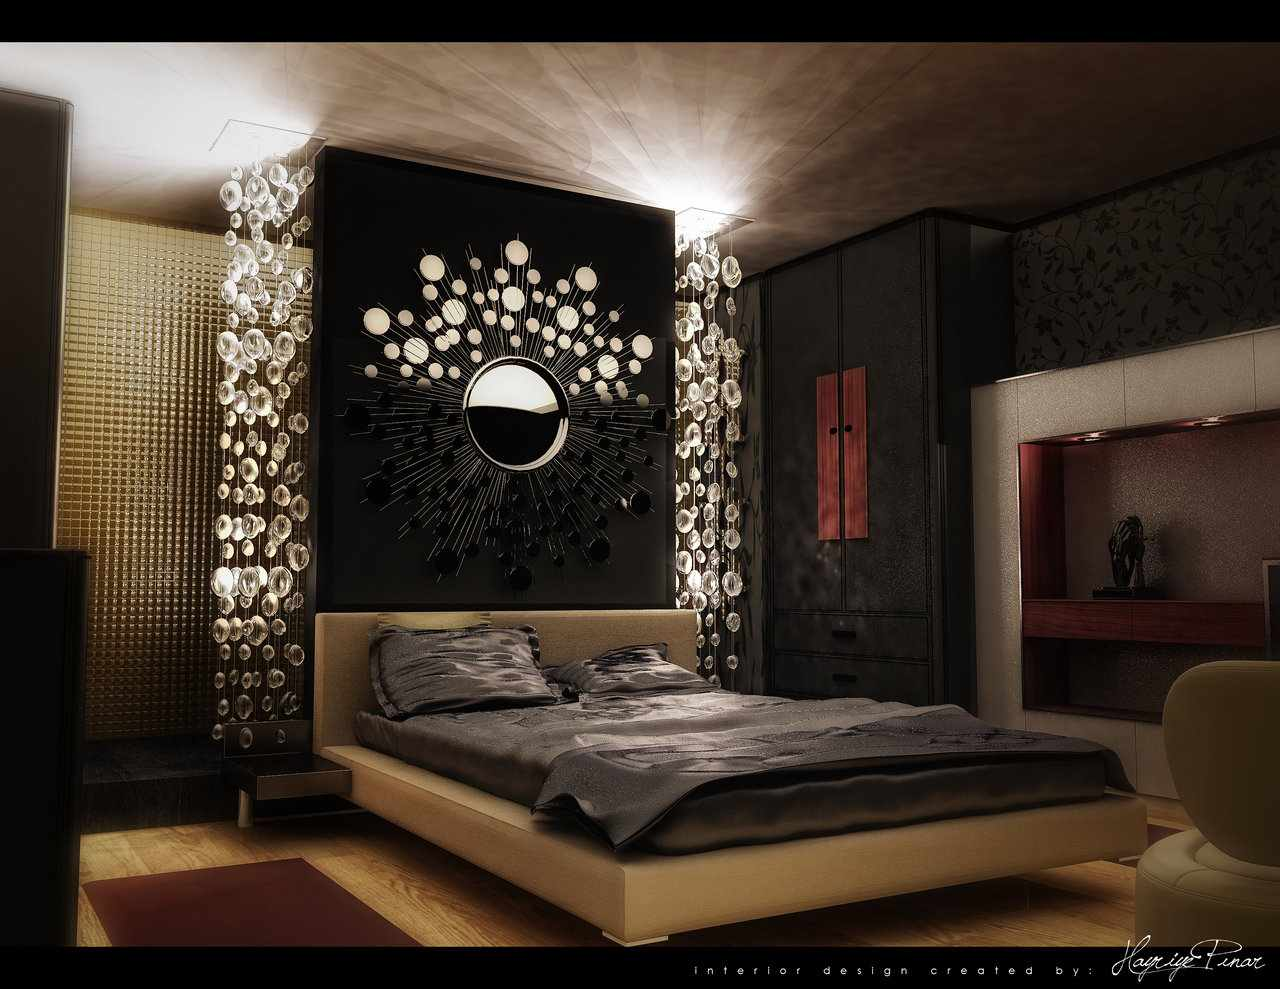 Ikea bedroom ideas ikea bedroom 2014 ideas exotic for Exotic bedroom decor